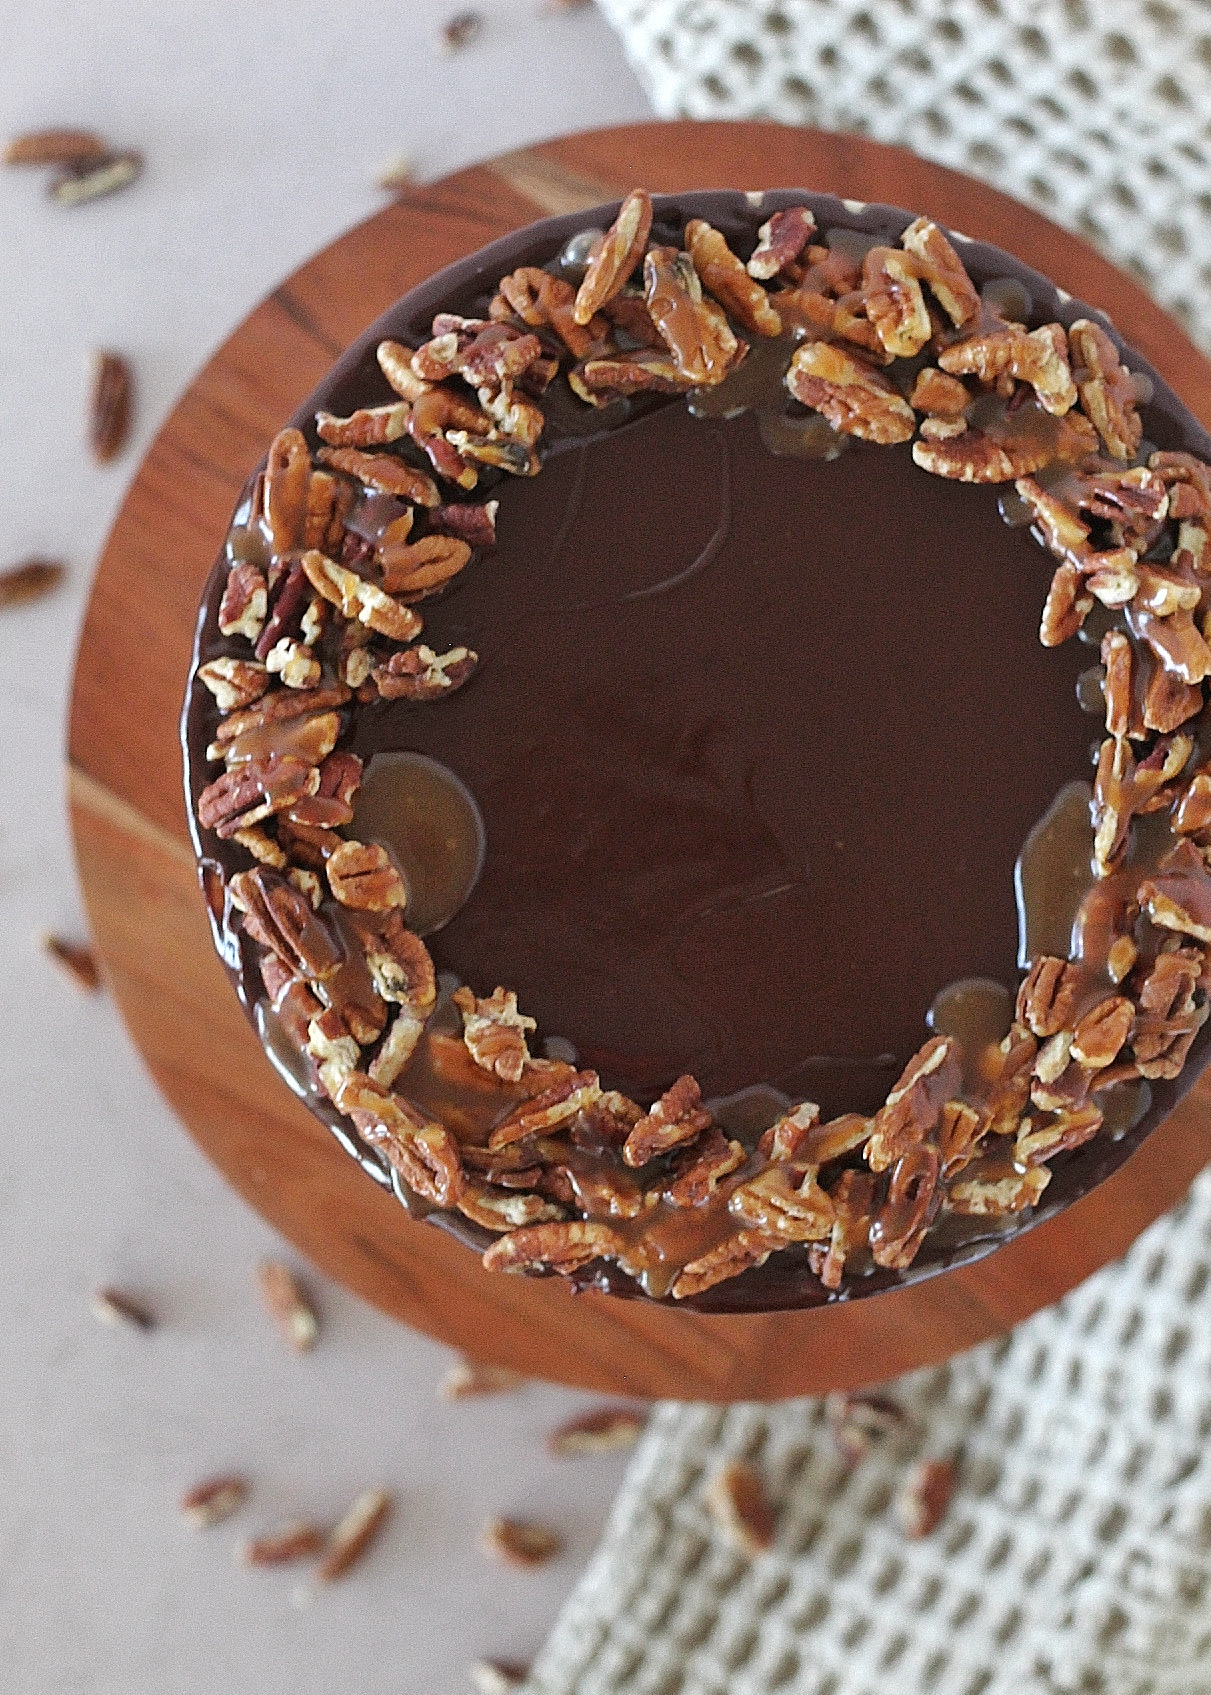 Turtle Pie Cake - rich and tender chocolate cake layers with salted caramel, toasted pecans, chocolate ganache and pecan buttercream #cakebycourtney #pecan #turtlepie #turtlepiecake #turtlepiecakerecipe #turtlepierecipe #chocolatecake #thebestturtlepiecake #thebestturtlepie